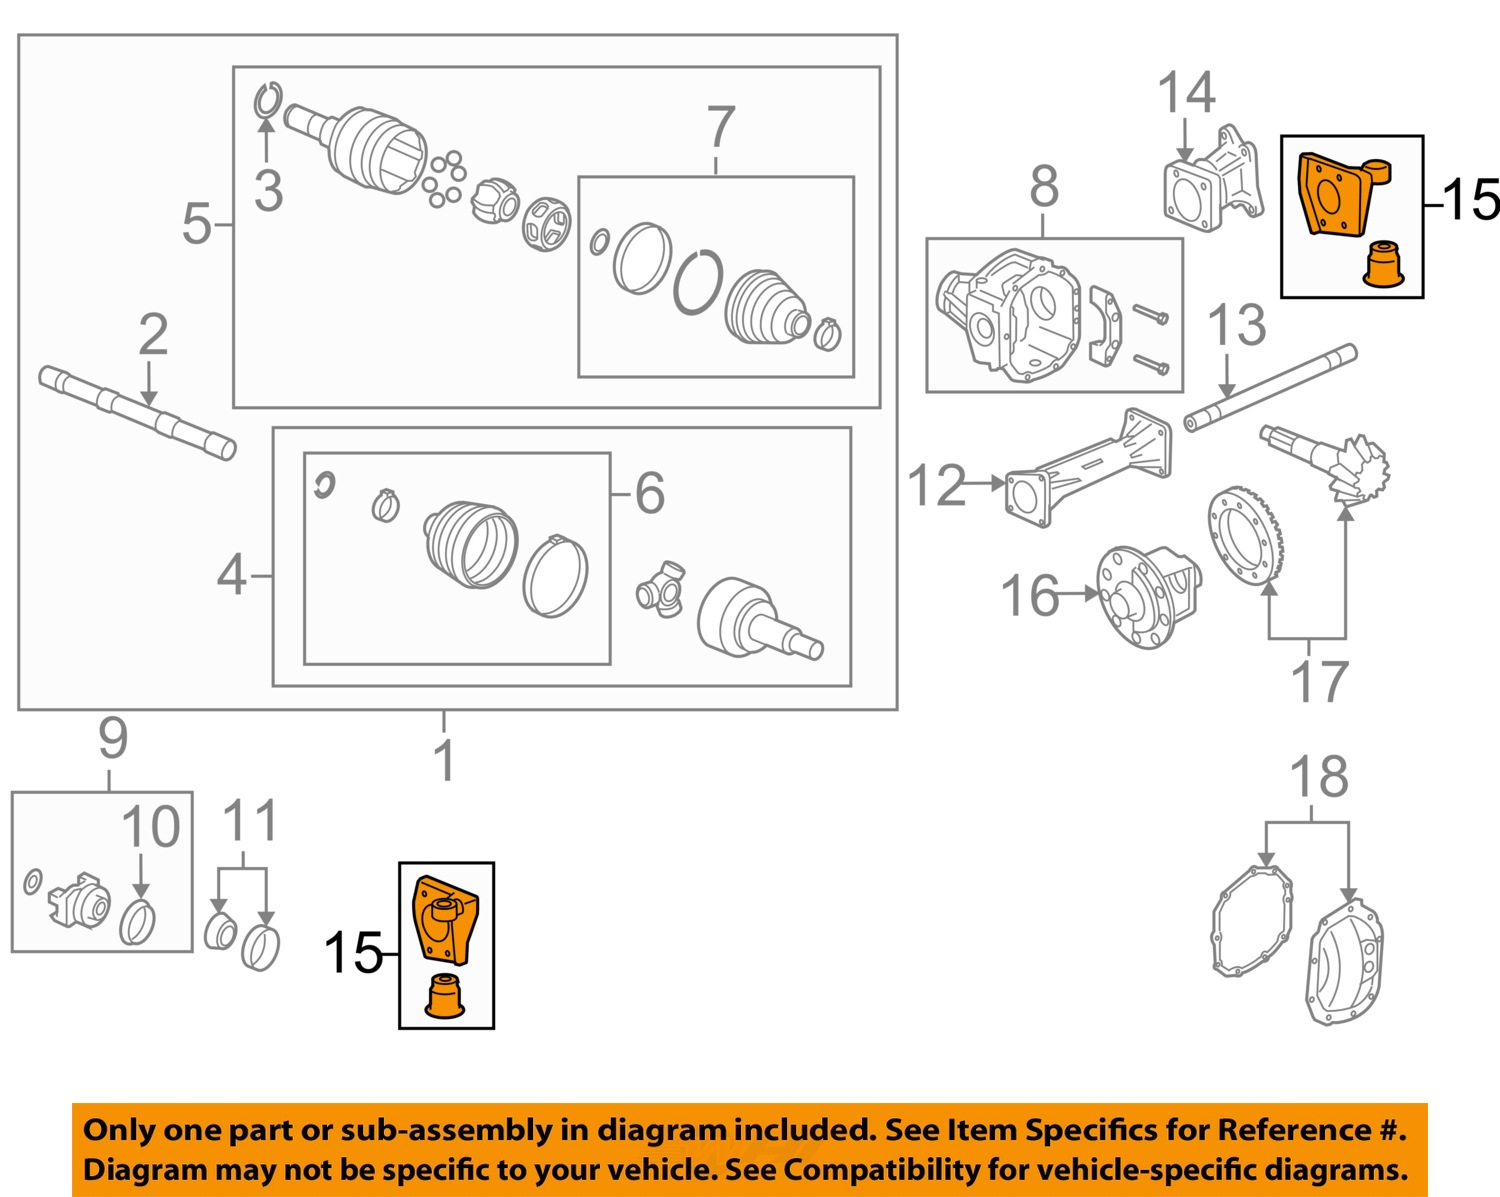 Hummer H3 Sunroof Diagram Electrical Wiring Diagrams For Front Free Vehicle U2022 2007 Chrome Orange